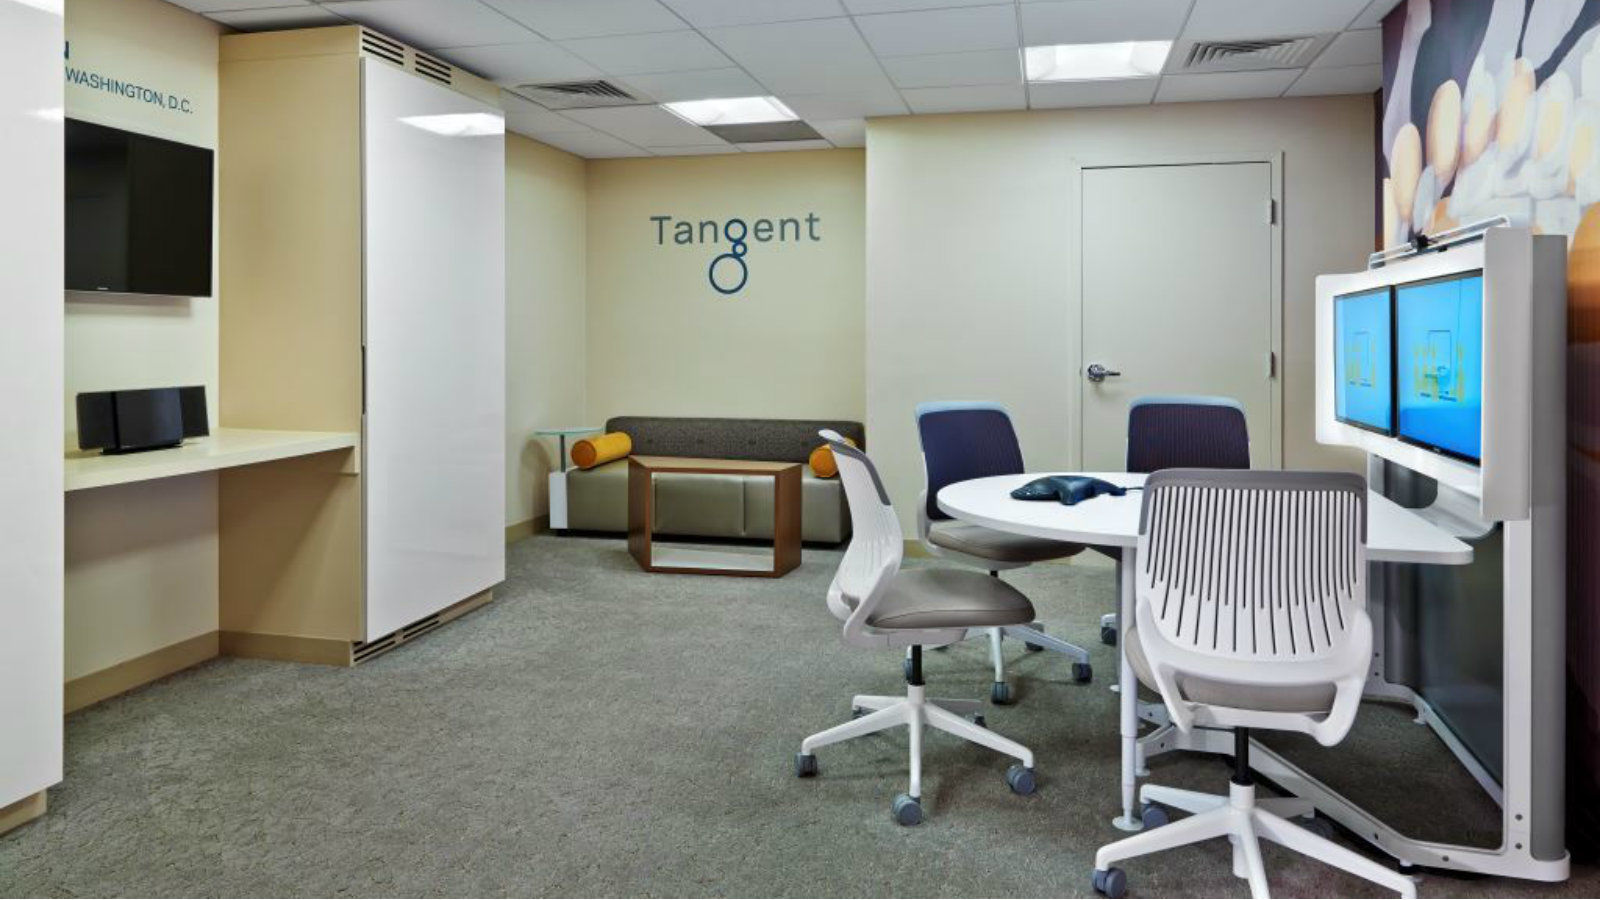 Tangent | The Westin Georgetown Washington D.C.